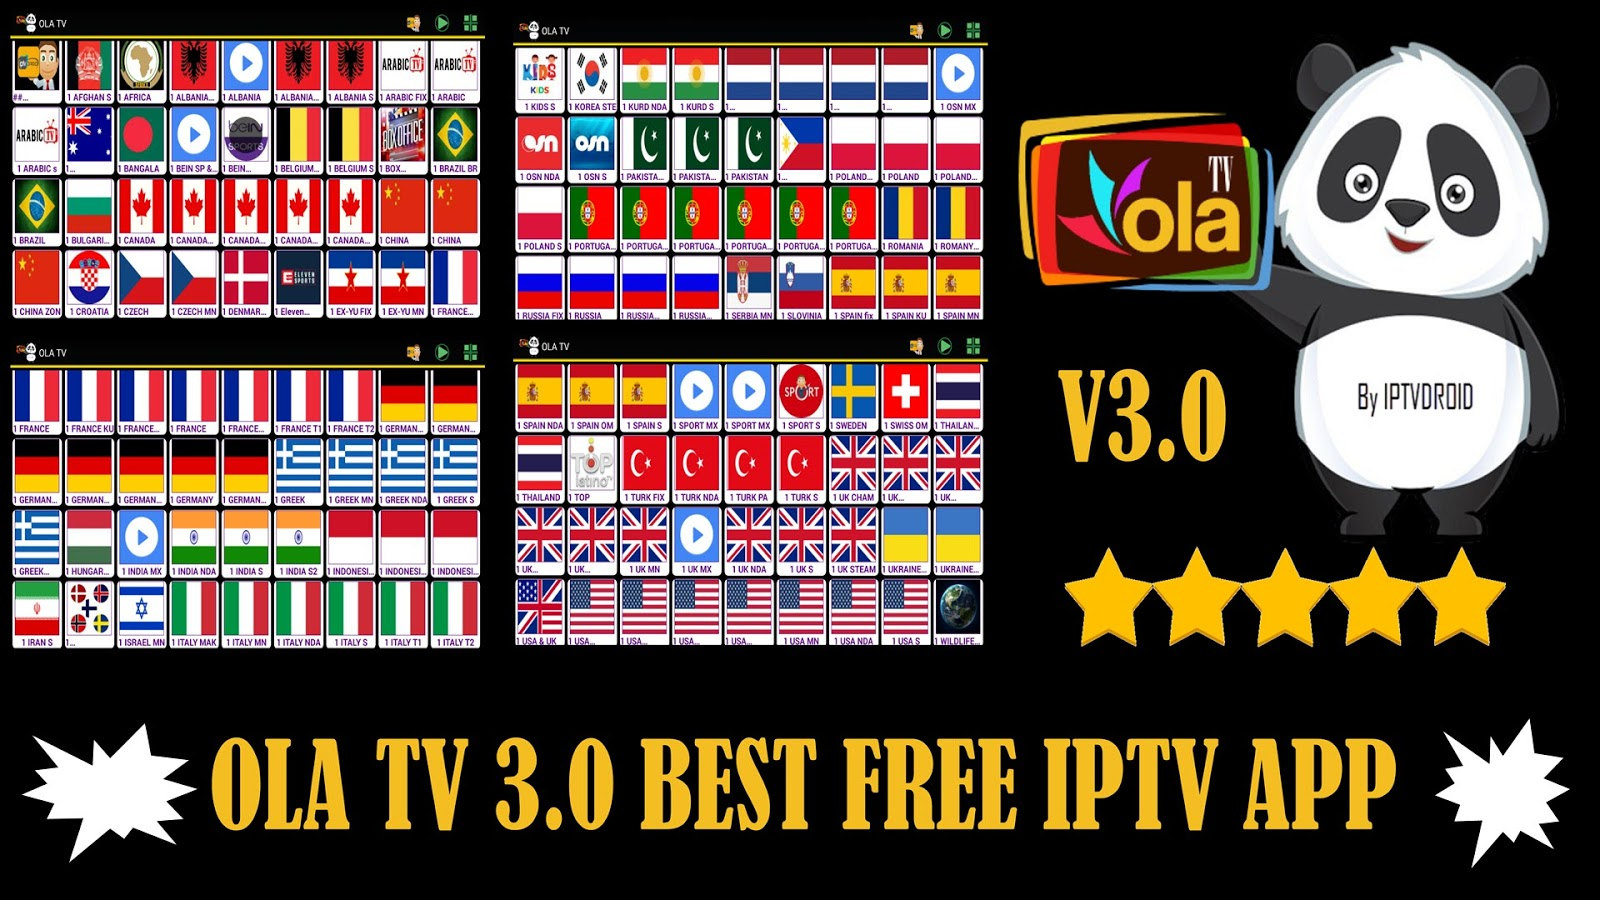 OLA TV V 3 0 BEST FREE IPTV & WATCH OVER 23000 CHANNELS ON